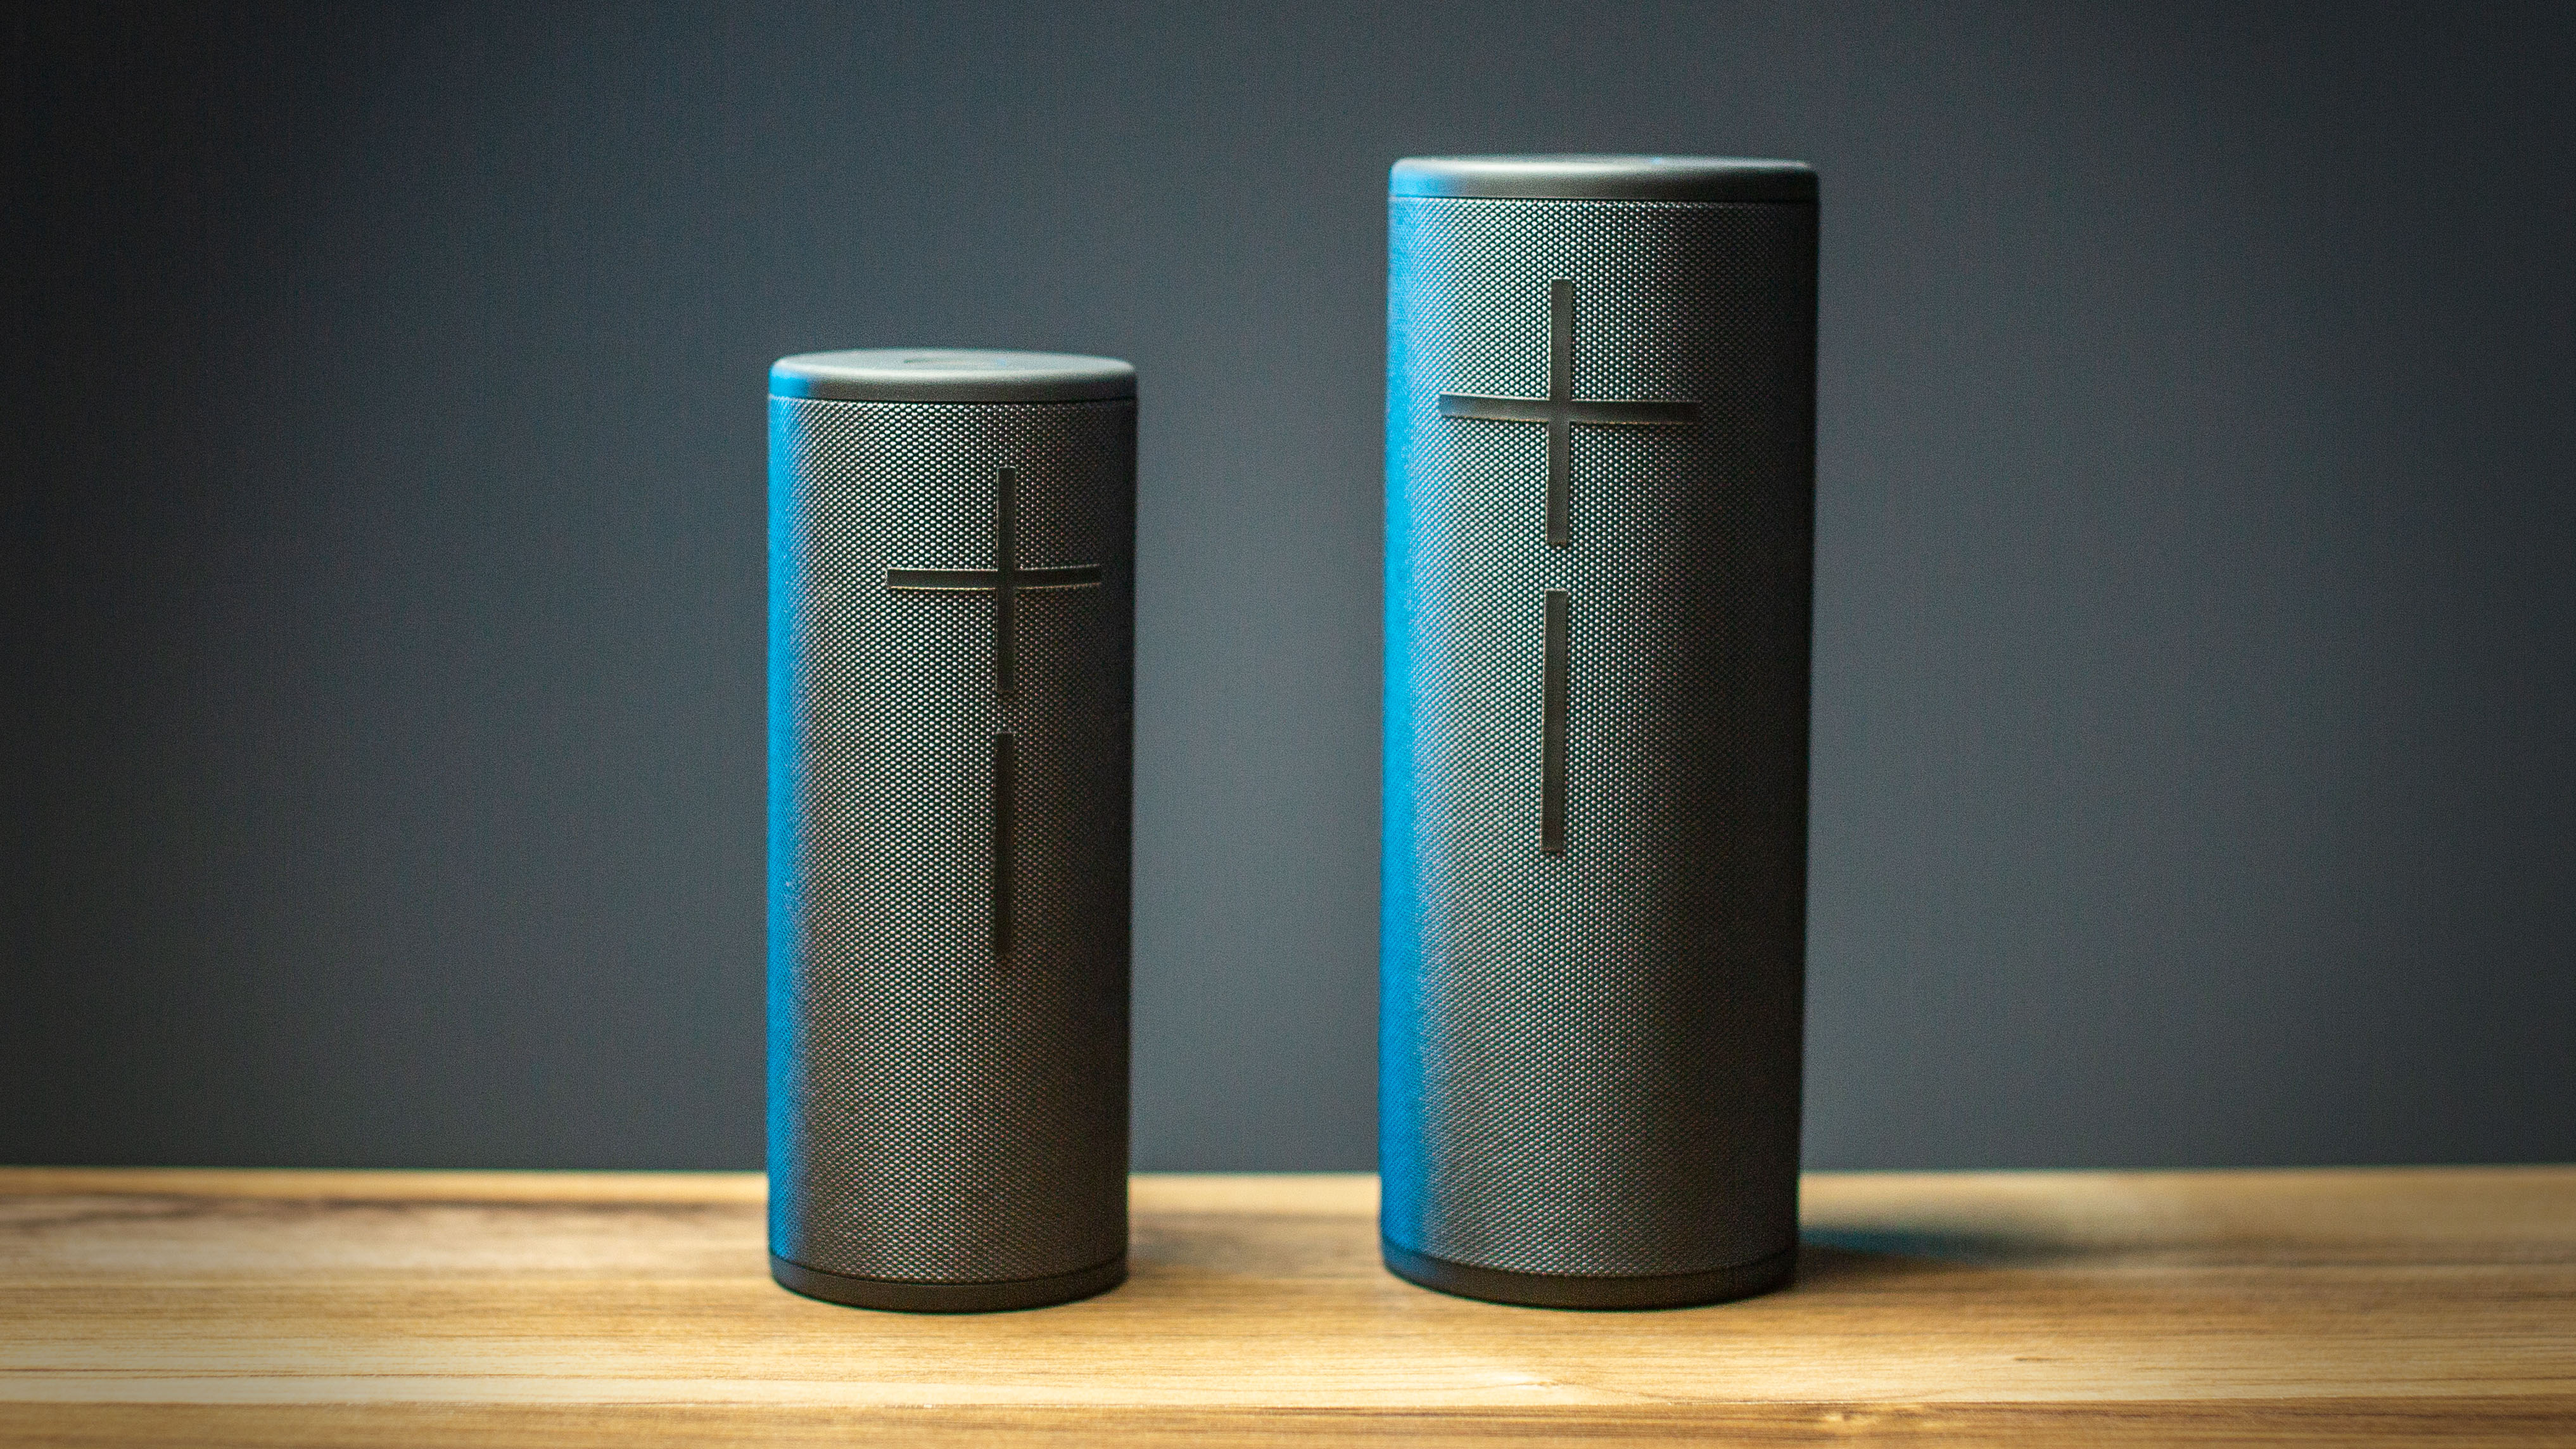 Blast off with the Boom 3 and Megaboom 3 from Ultimate Ears ...